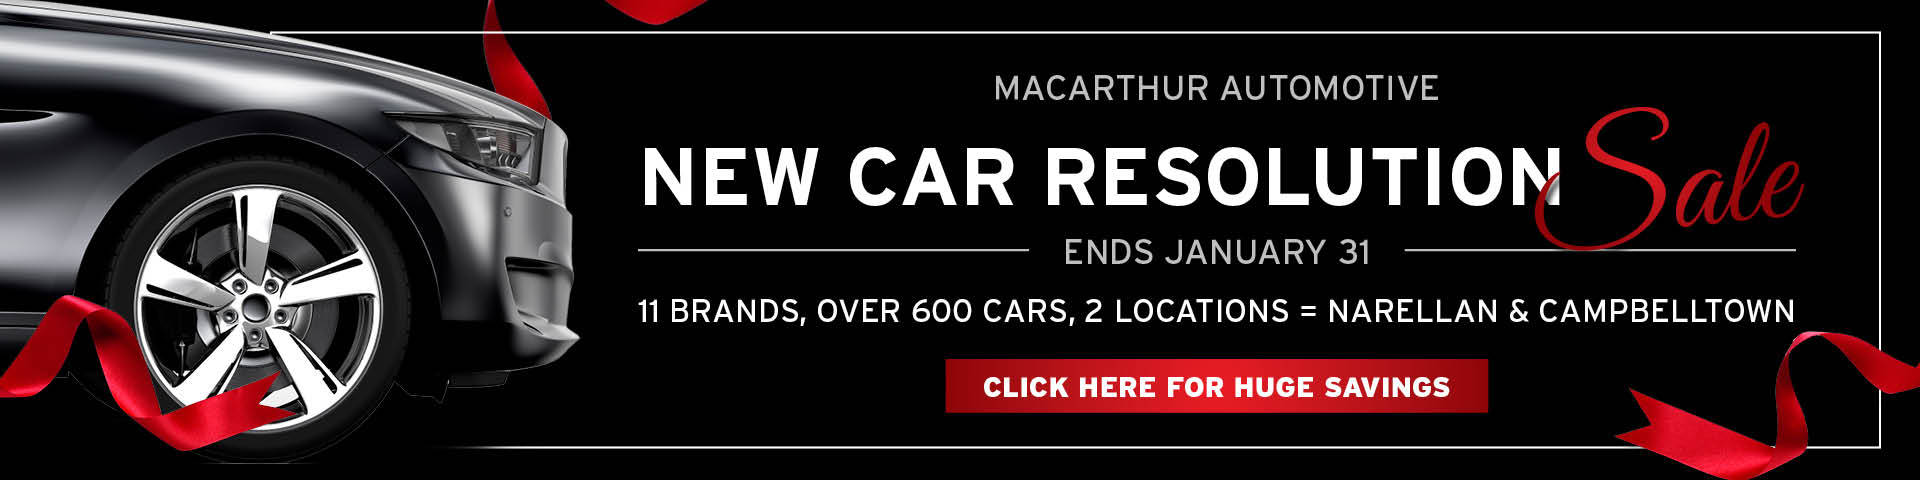 Macarthur Automotive - New Car Resolution Sale